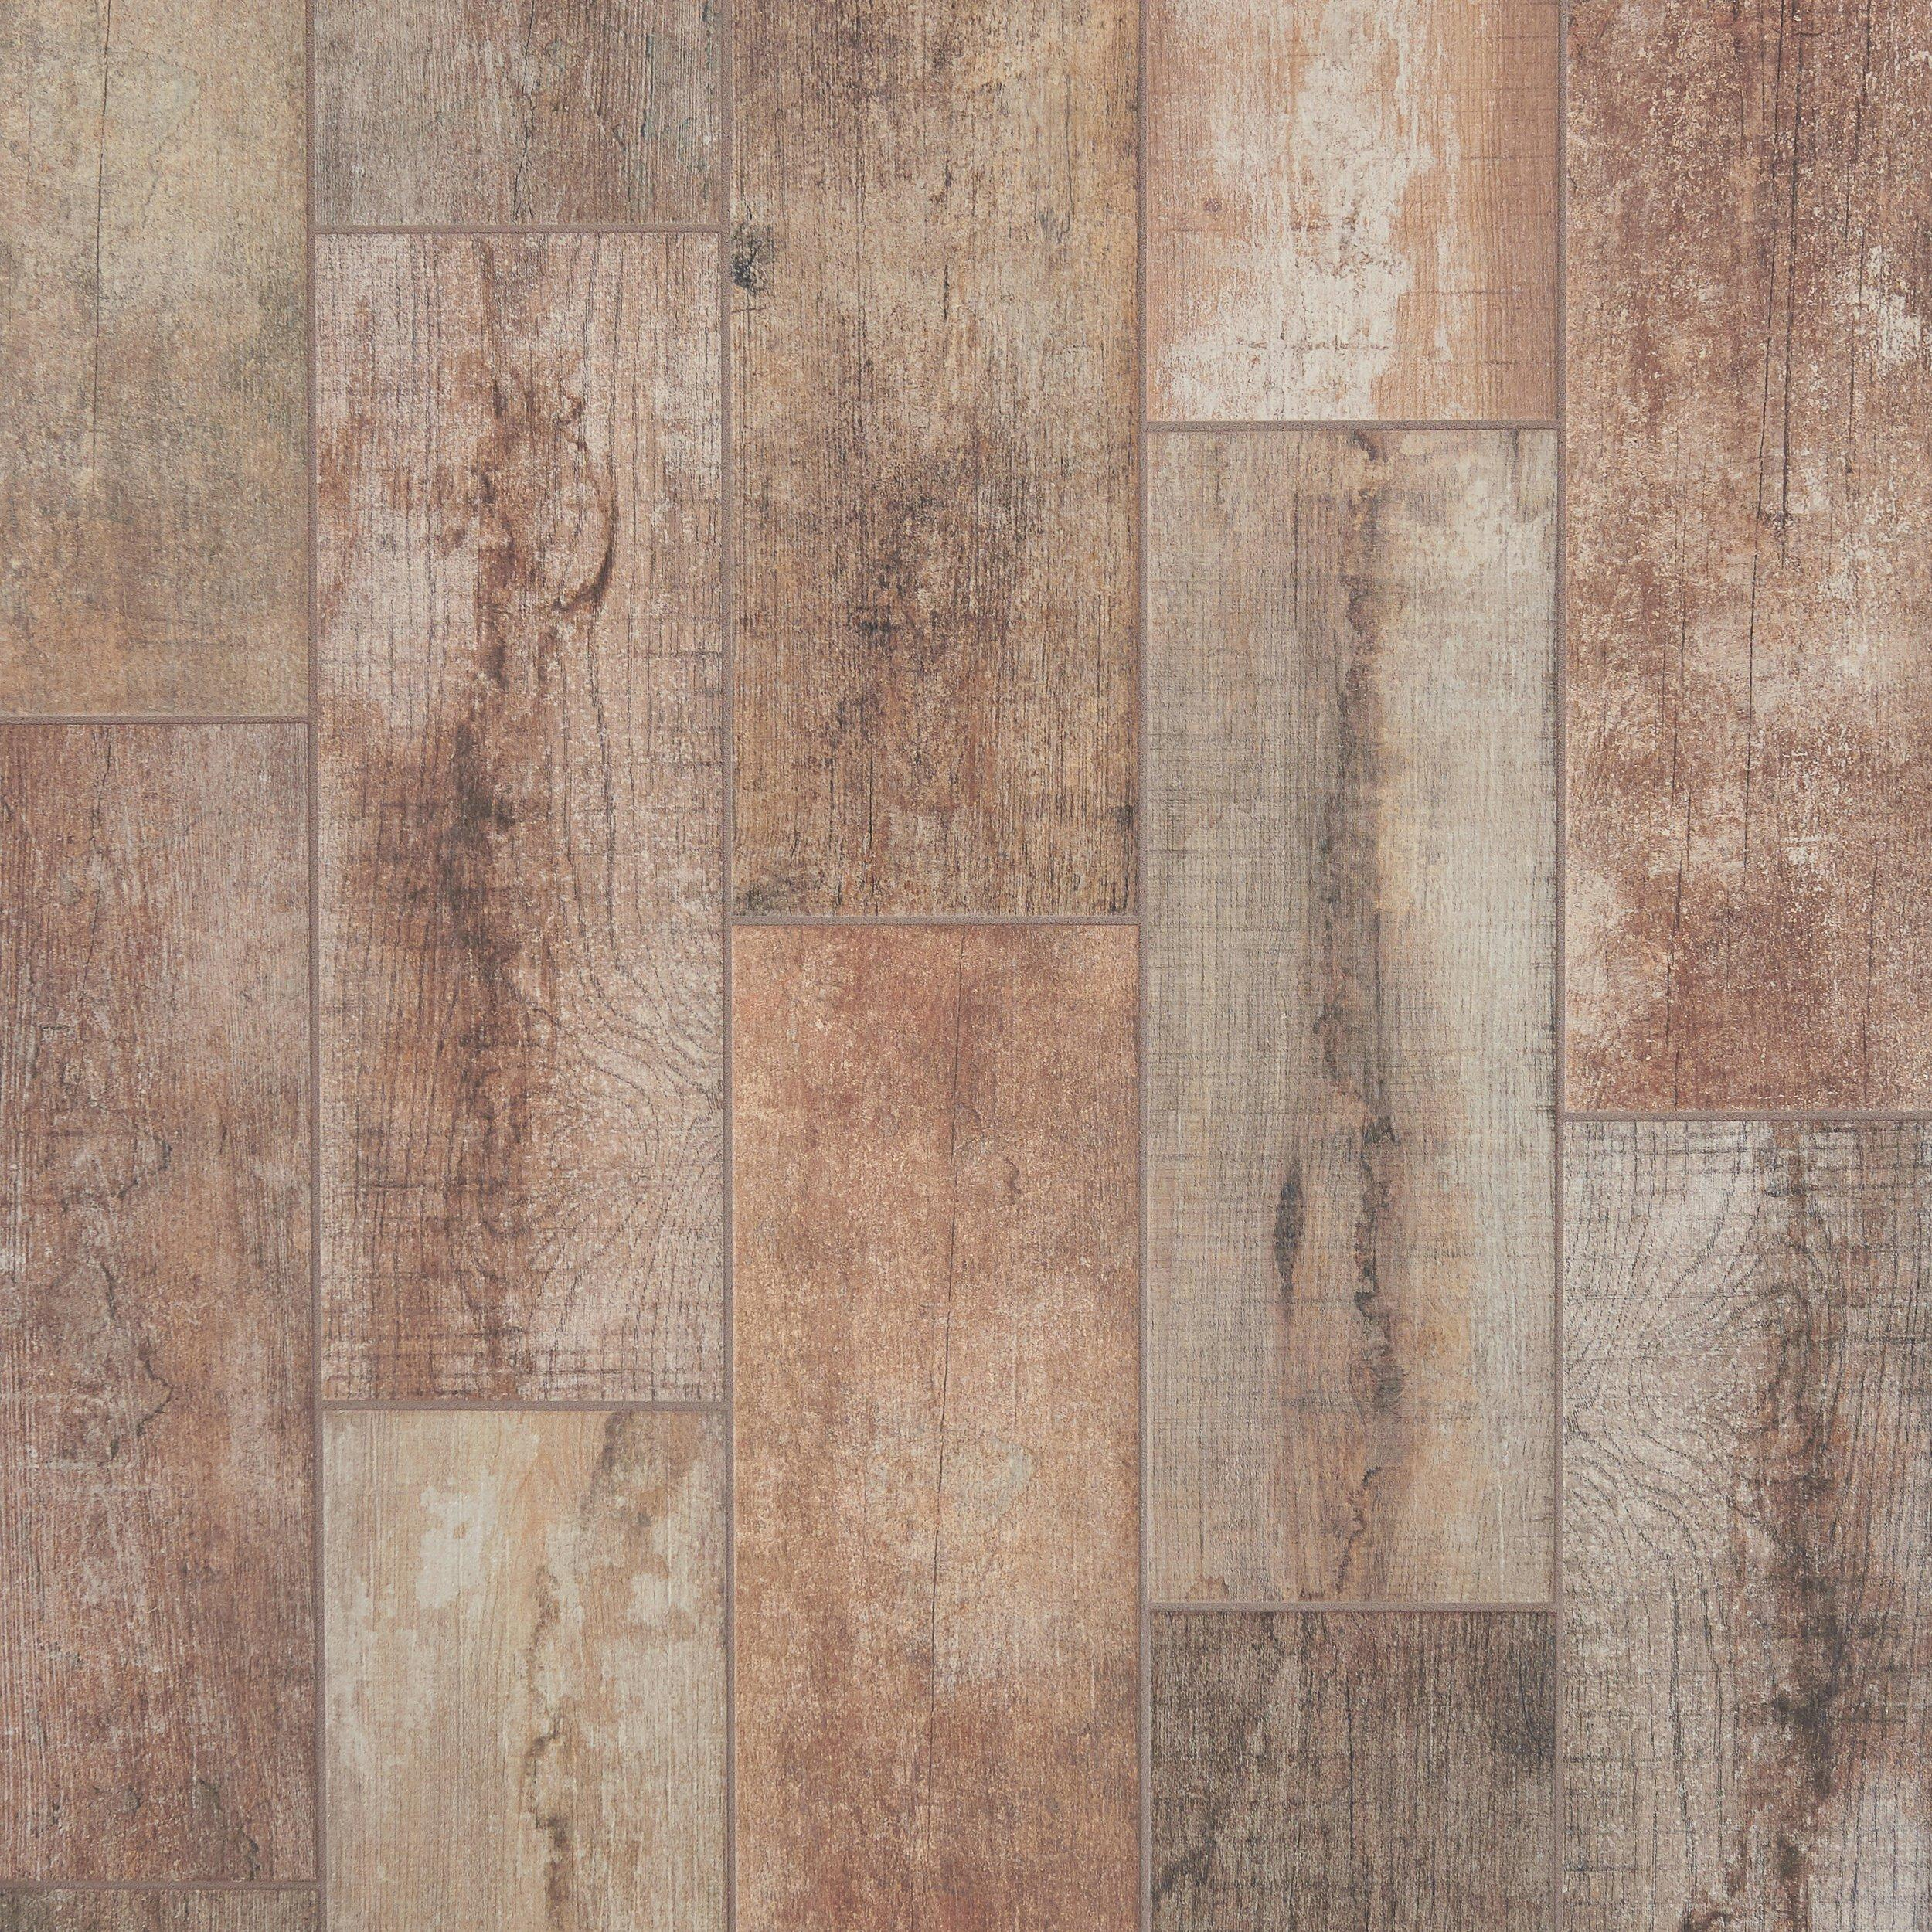 Floor and decor glendale - Julyo Wood Plank Ceramic Tile 7in X 20in 100066737 Floor And Decor